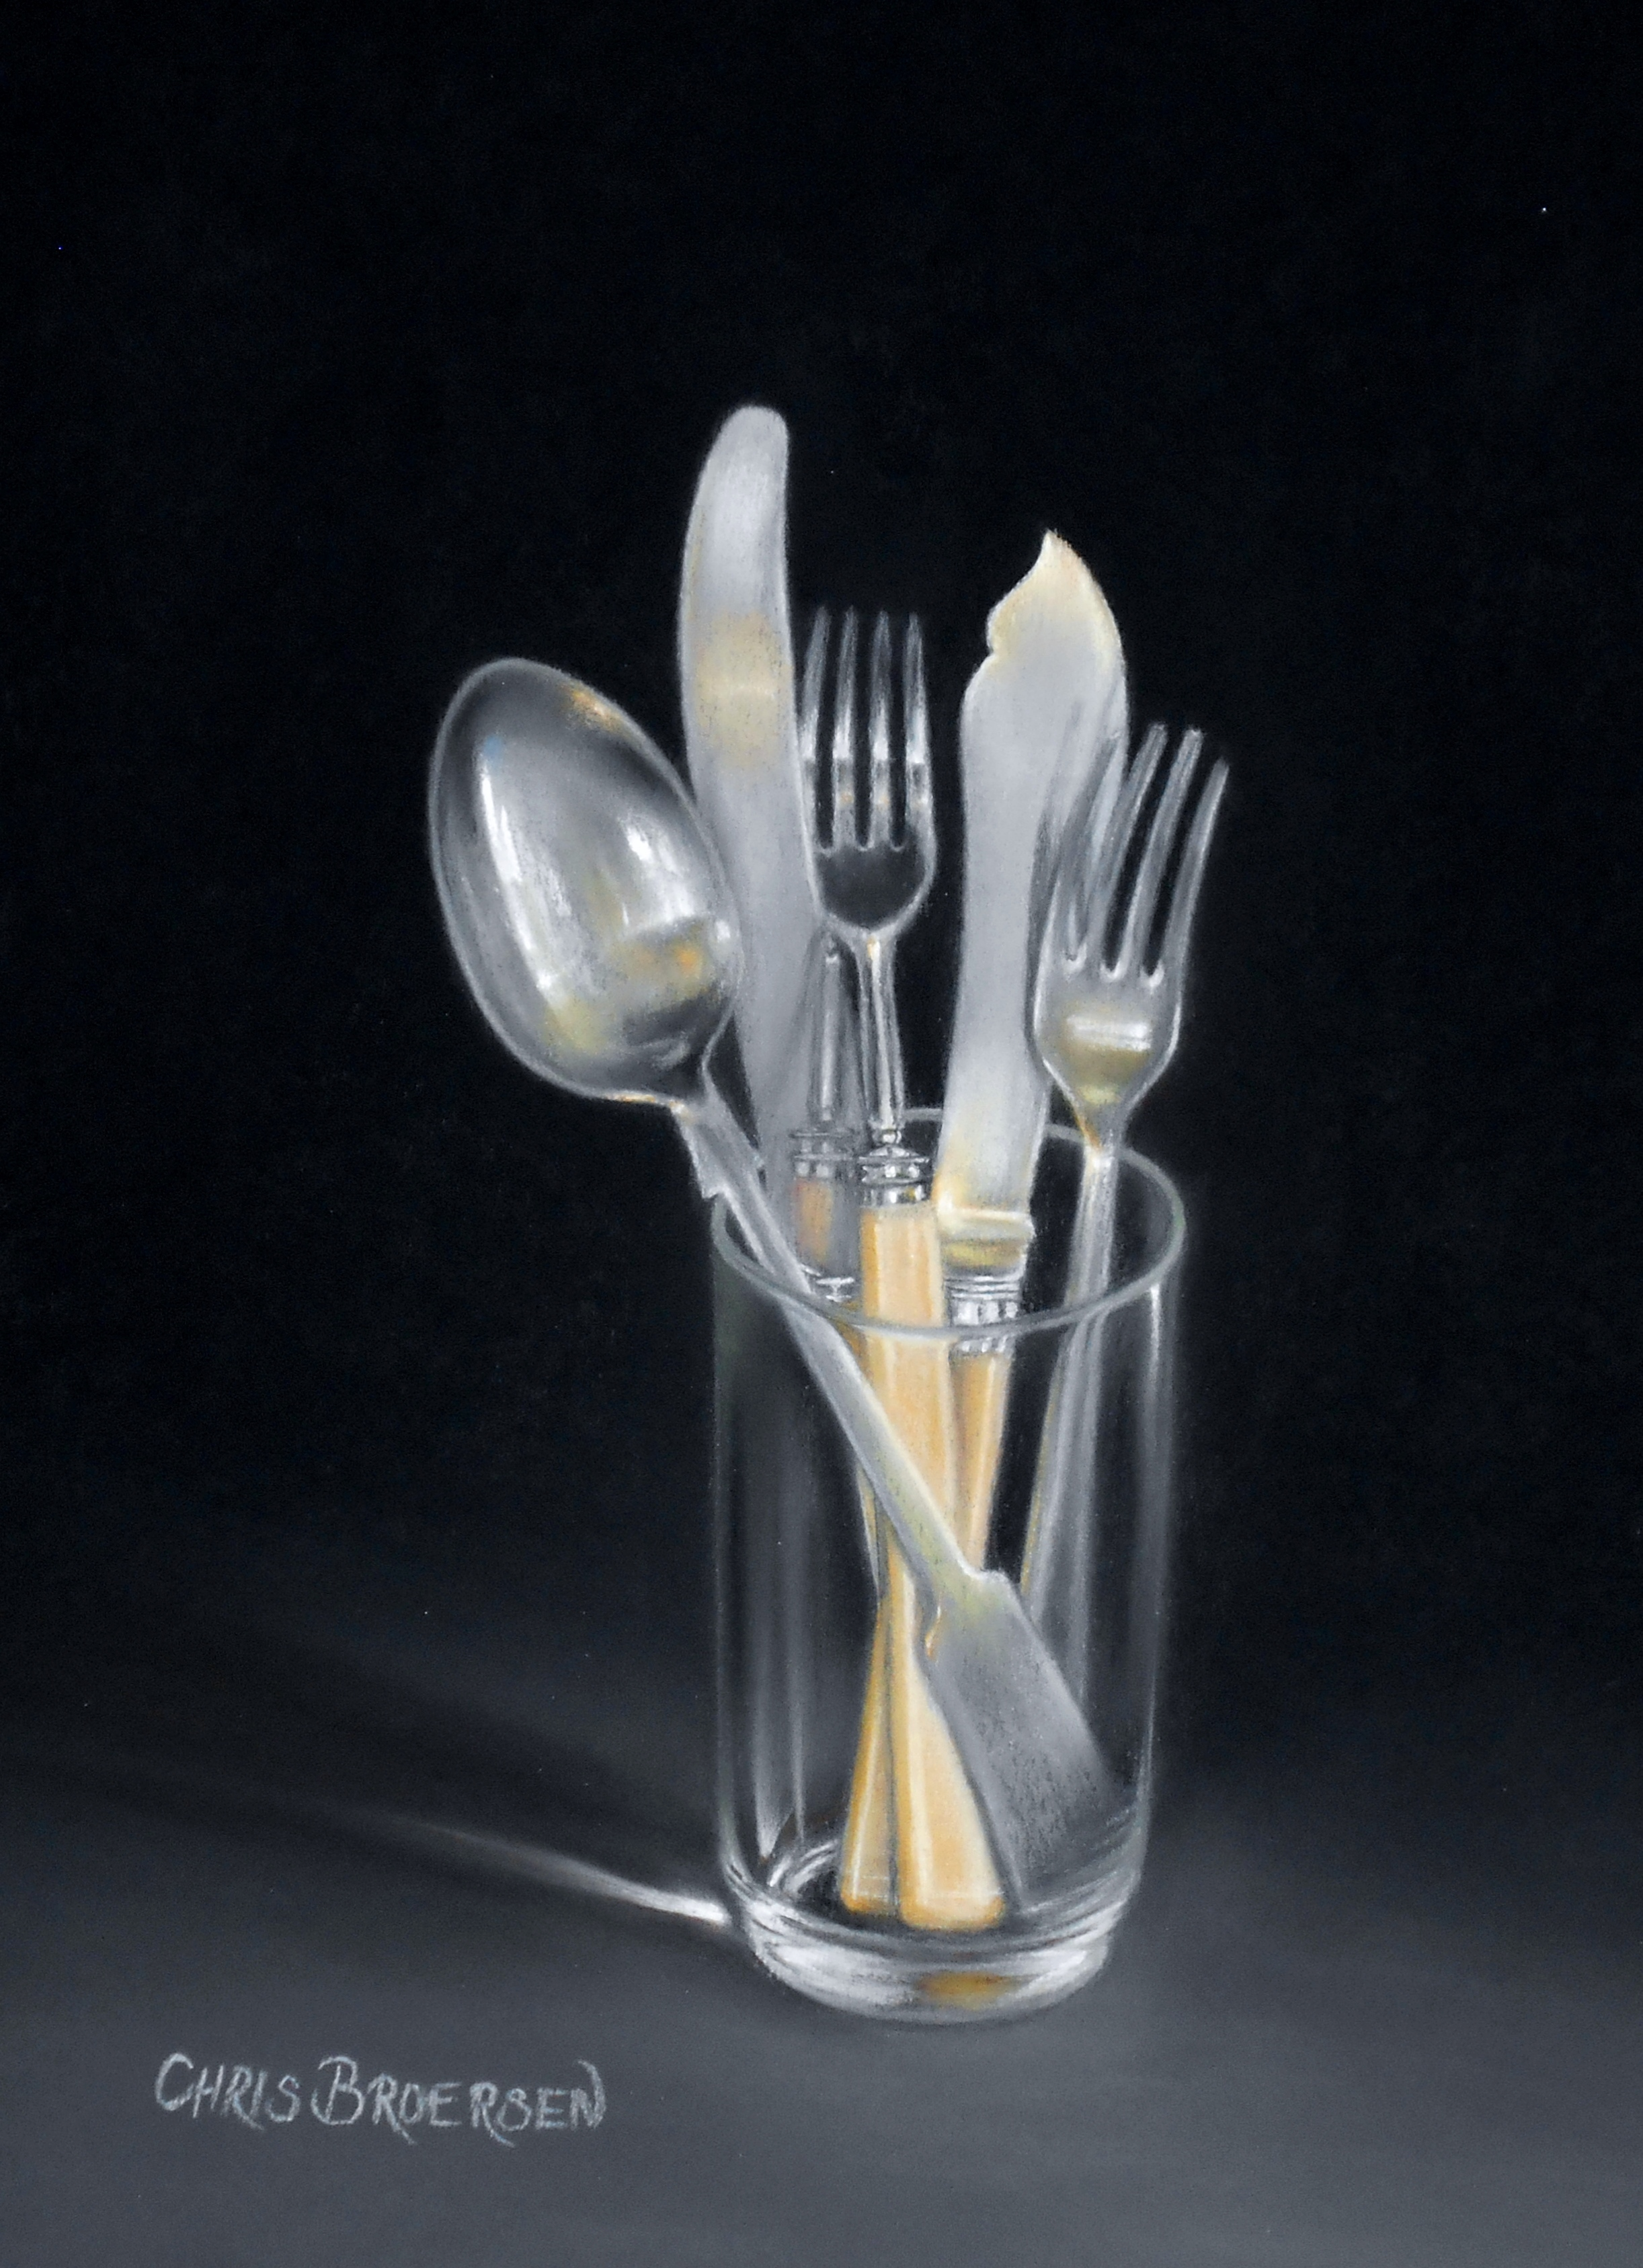 Knives, Forks and a Spoon